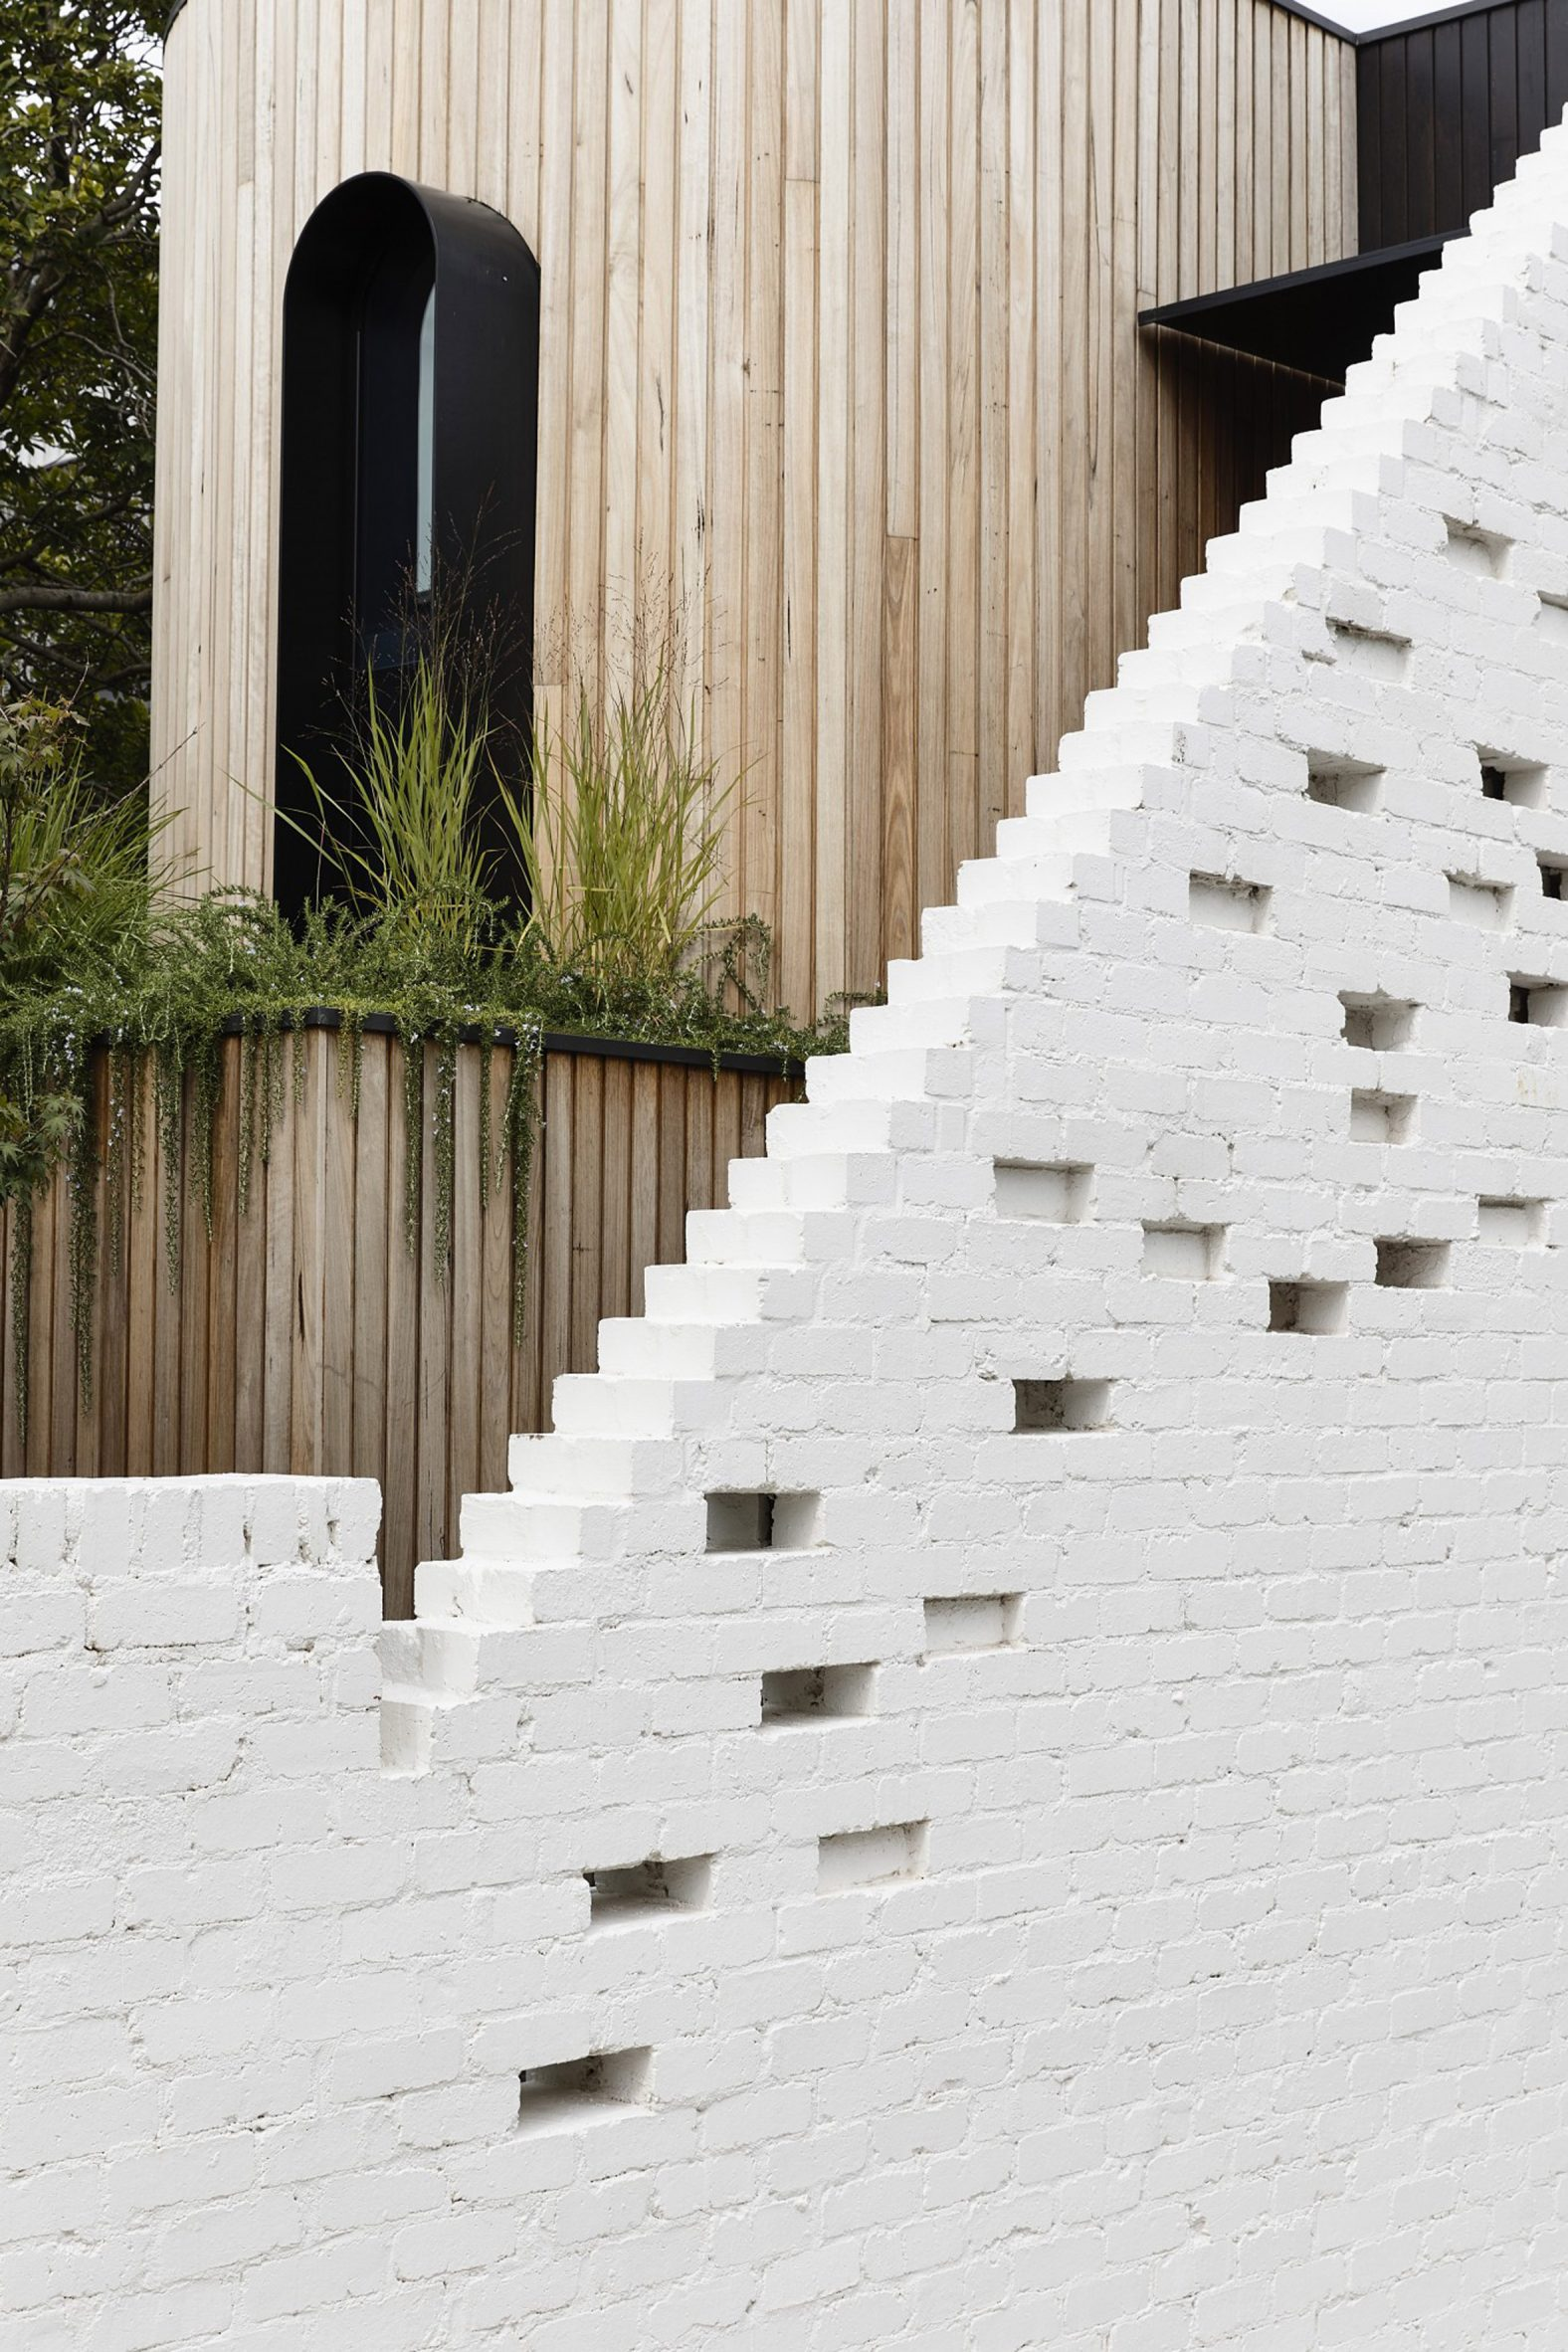 Behind the painted brick wall is a timber structure